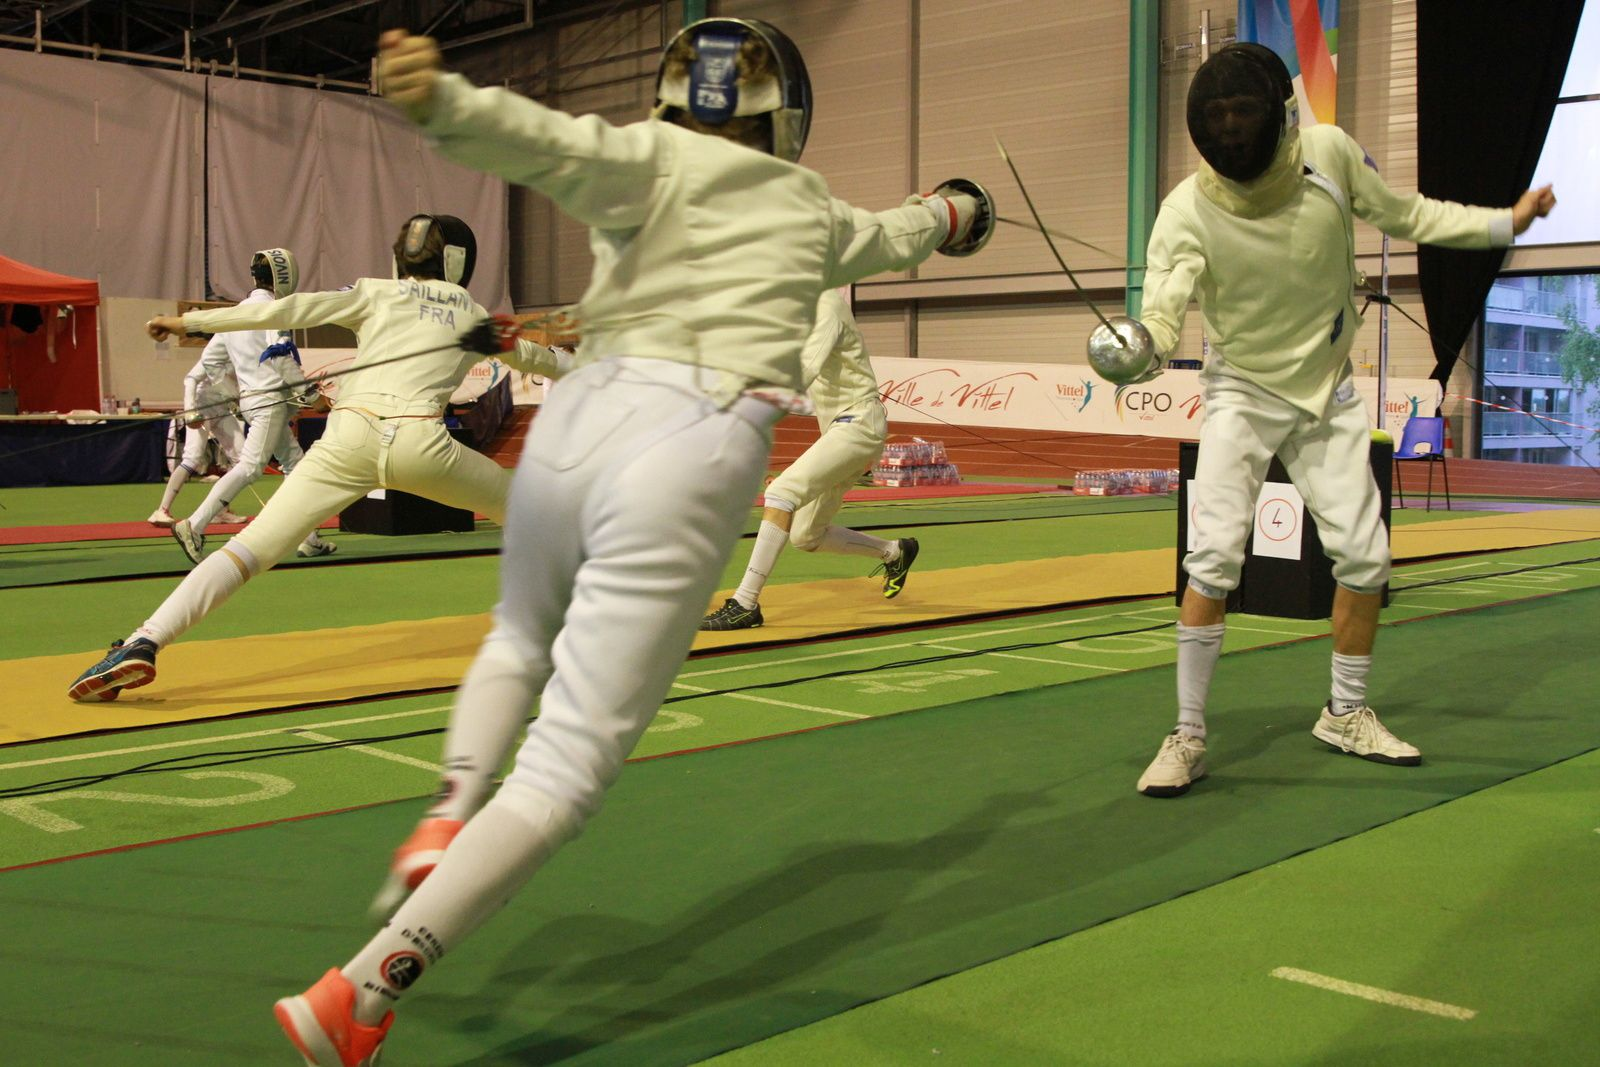 stage escrime France épée epee degen competition